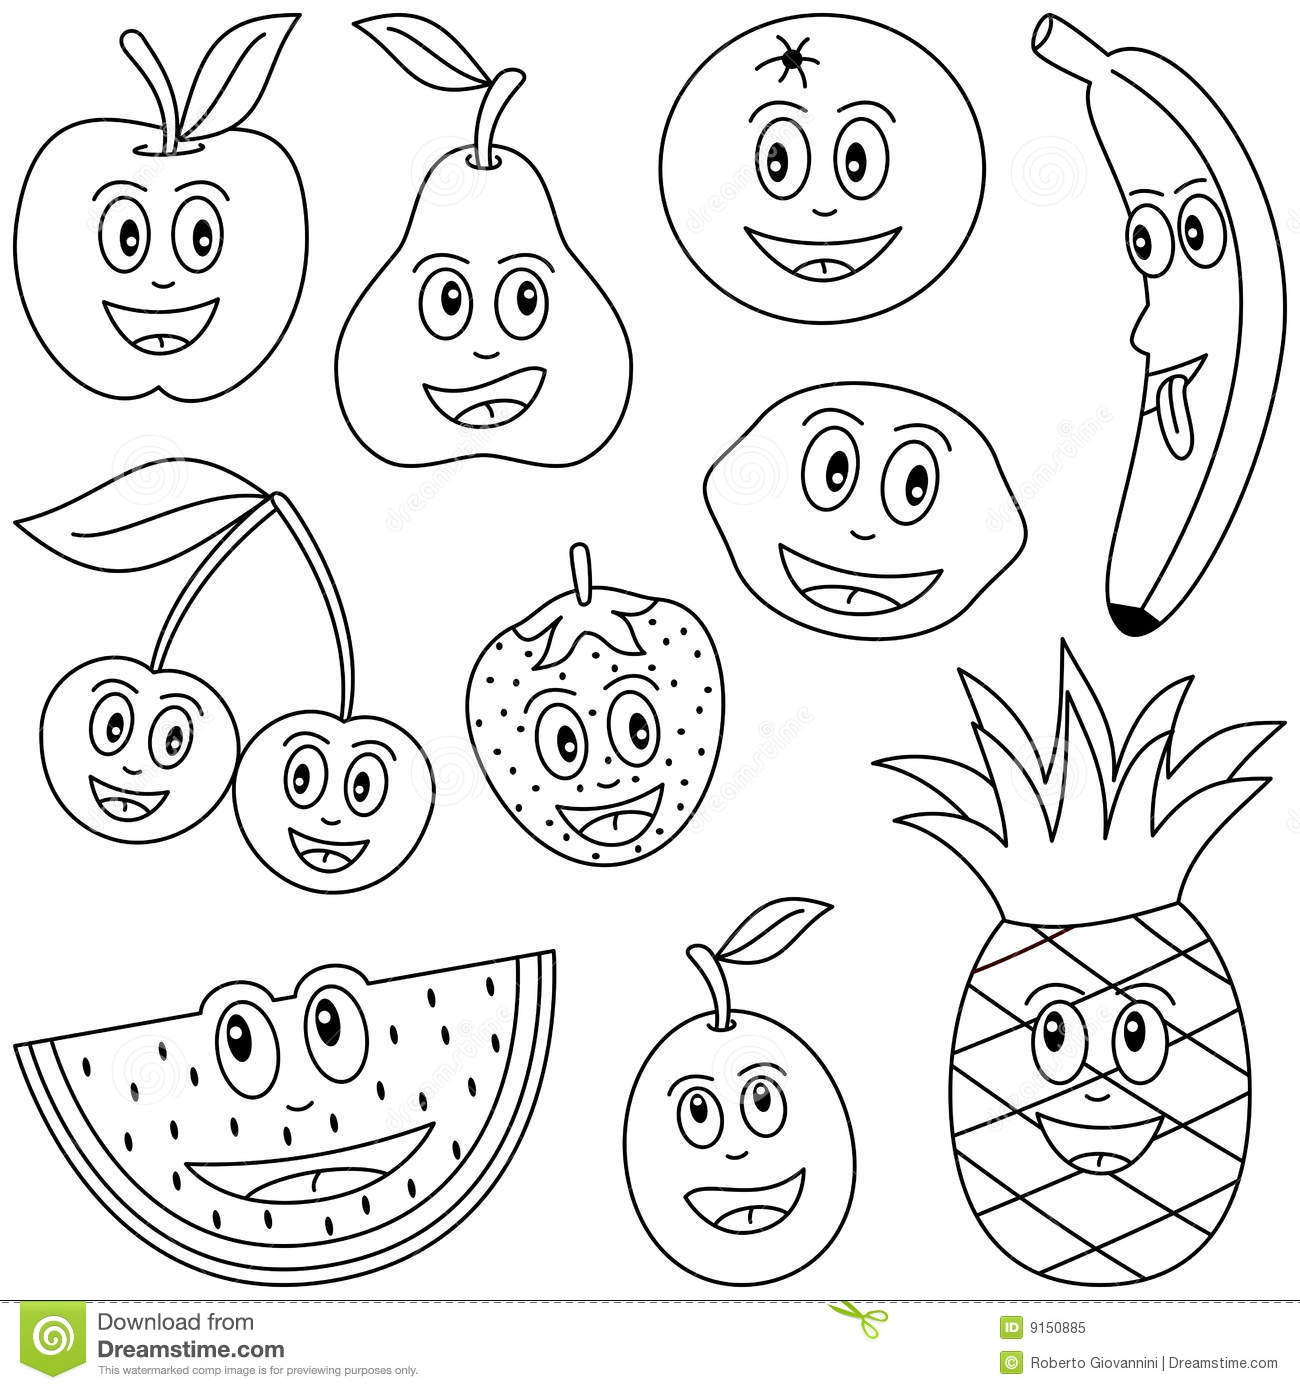 Royalty Vrije Stock Foto Kleurend Fruit Voor Jonge Geitjes Image9150885 together with A7x Logo likewise Louise Bobs Burgers Coloring Pages Sketch Templates also Rock Conjunto De Vectores 397505 as well Yoda Vector WIP 593428444. on the beatles clipart